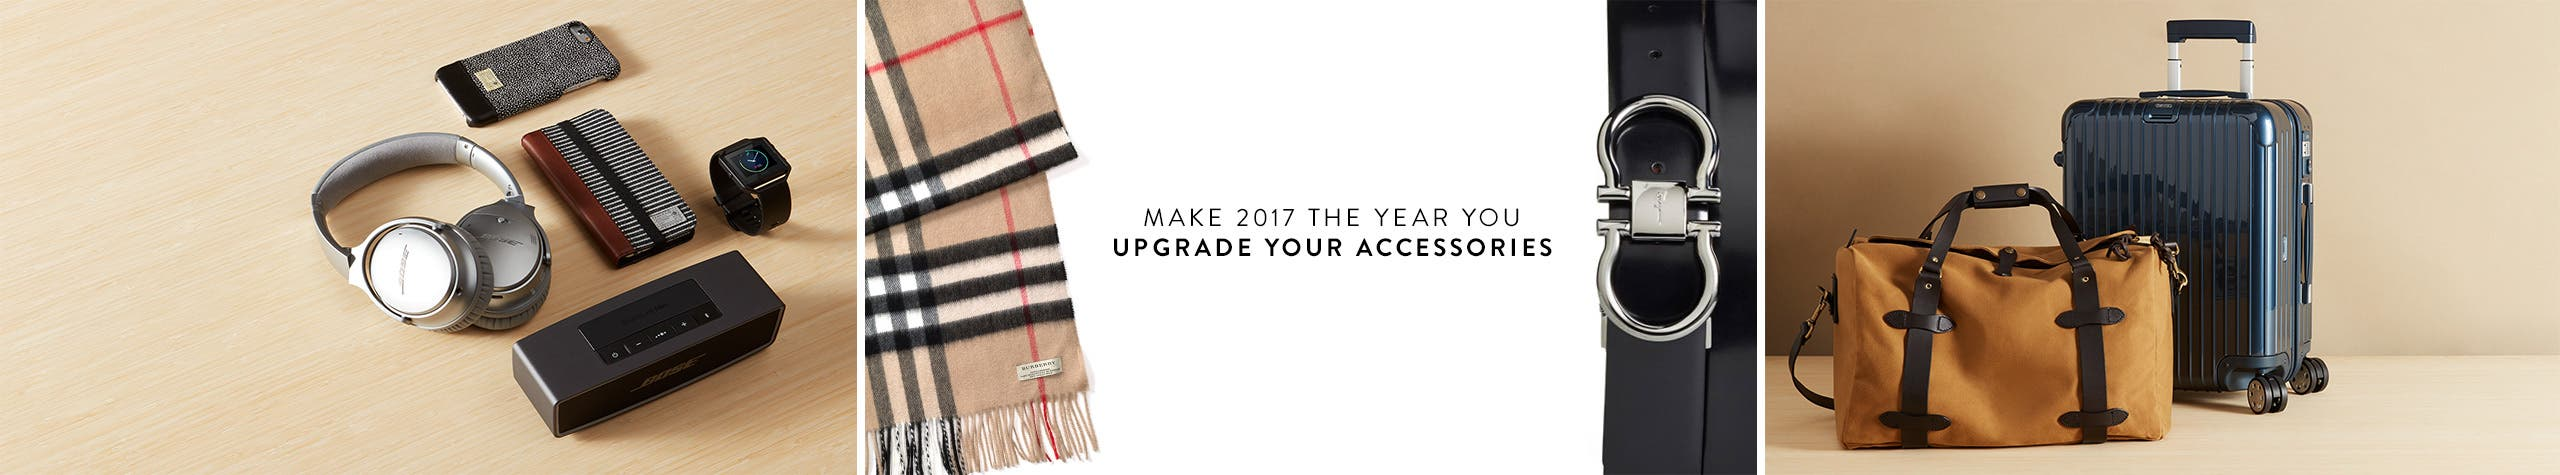 Make 2017 the year you upgrade your accessories.